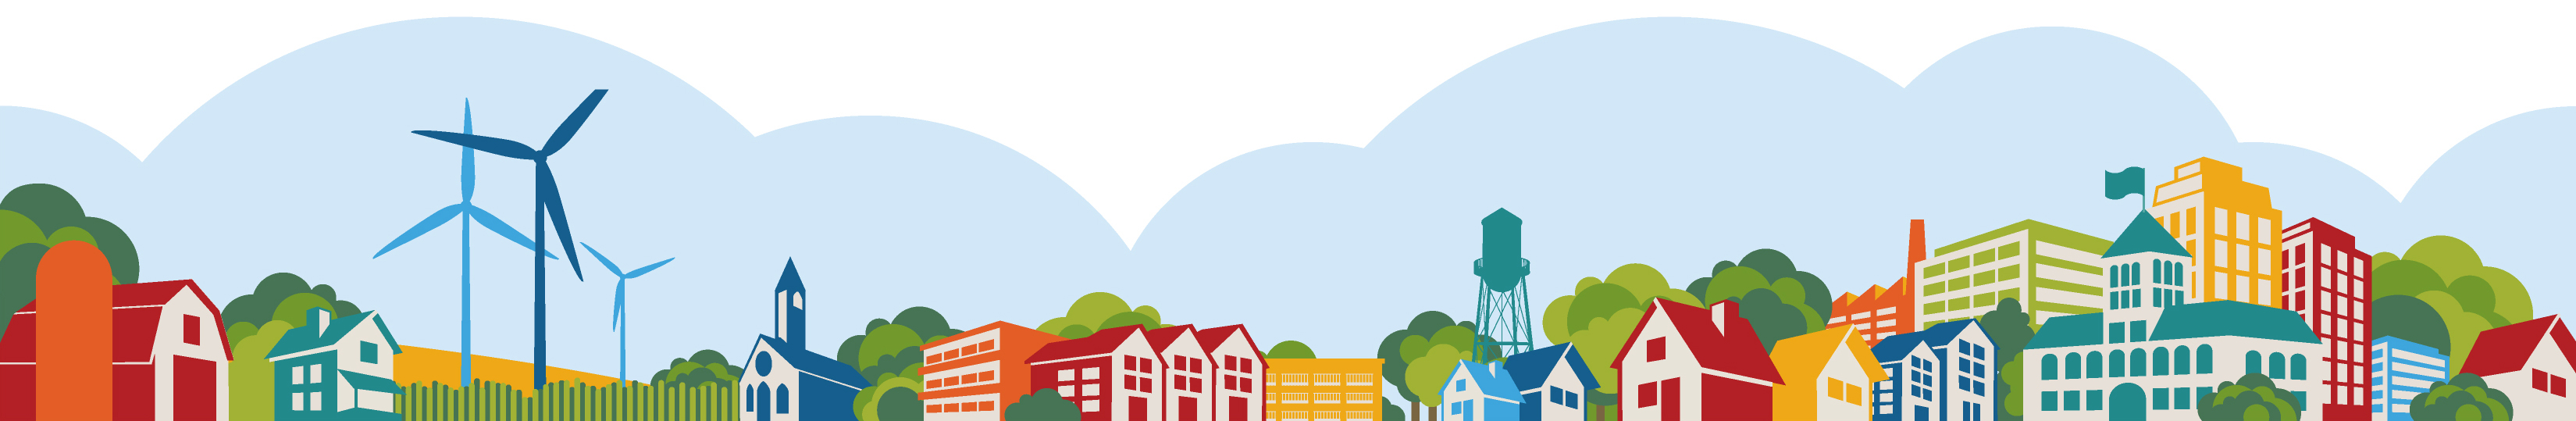 Colorful banner image featuring the skyline that you might typically see in a small city or town in Greater Minnesota.